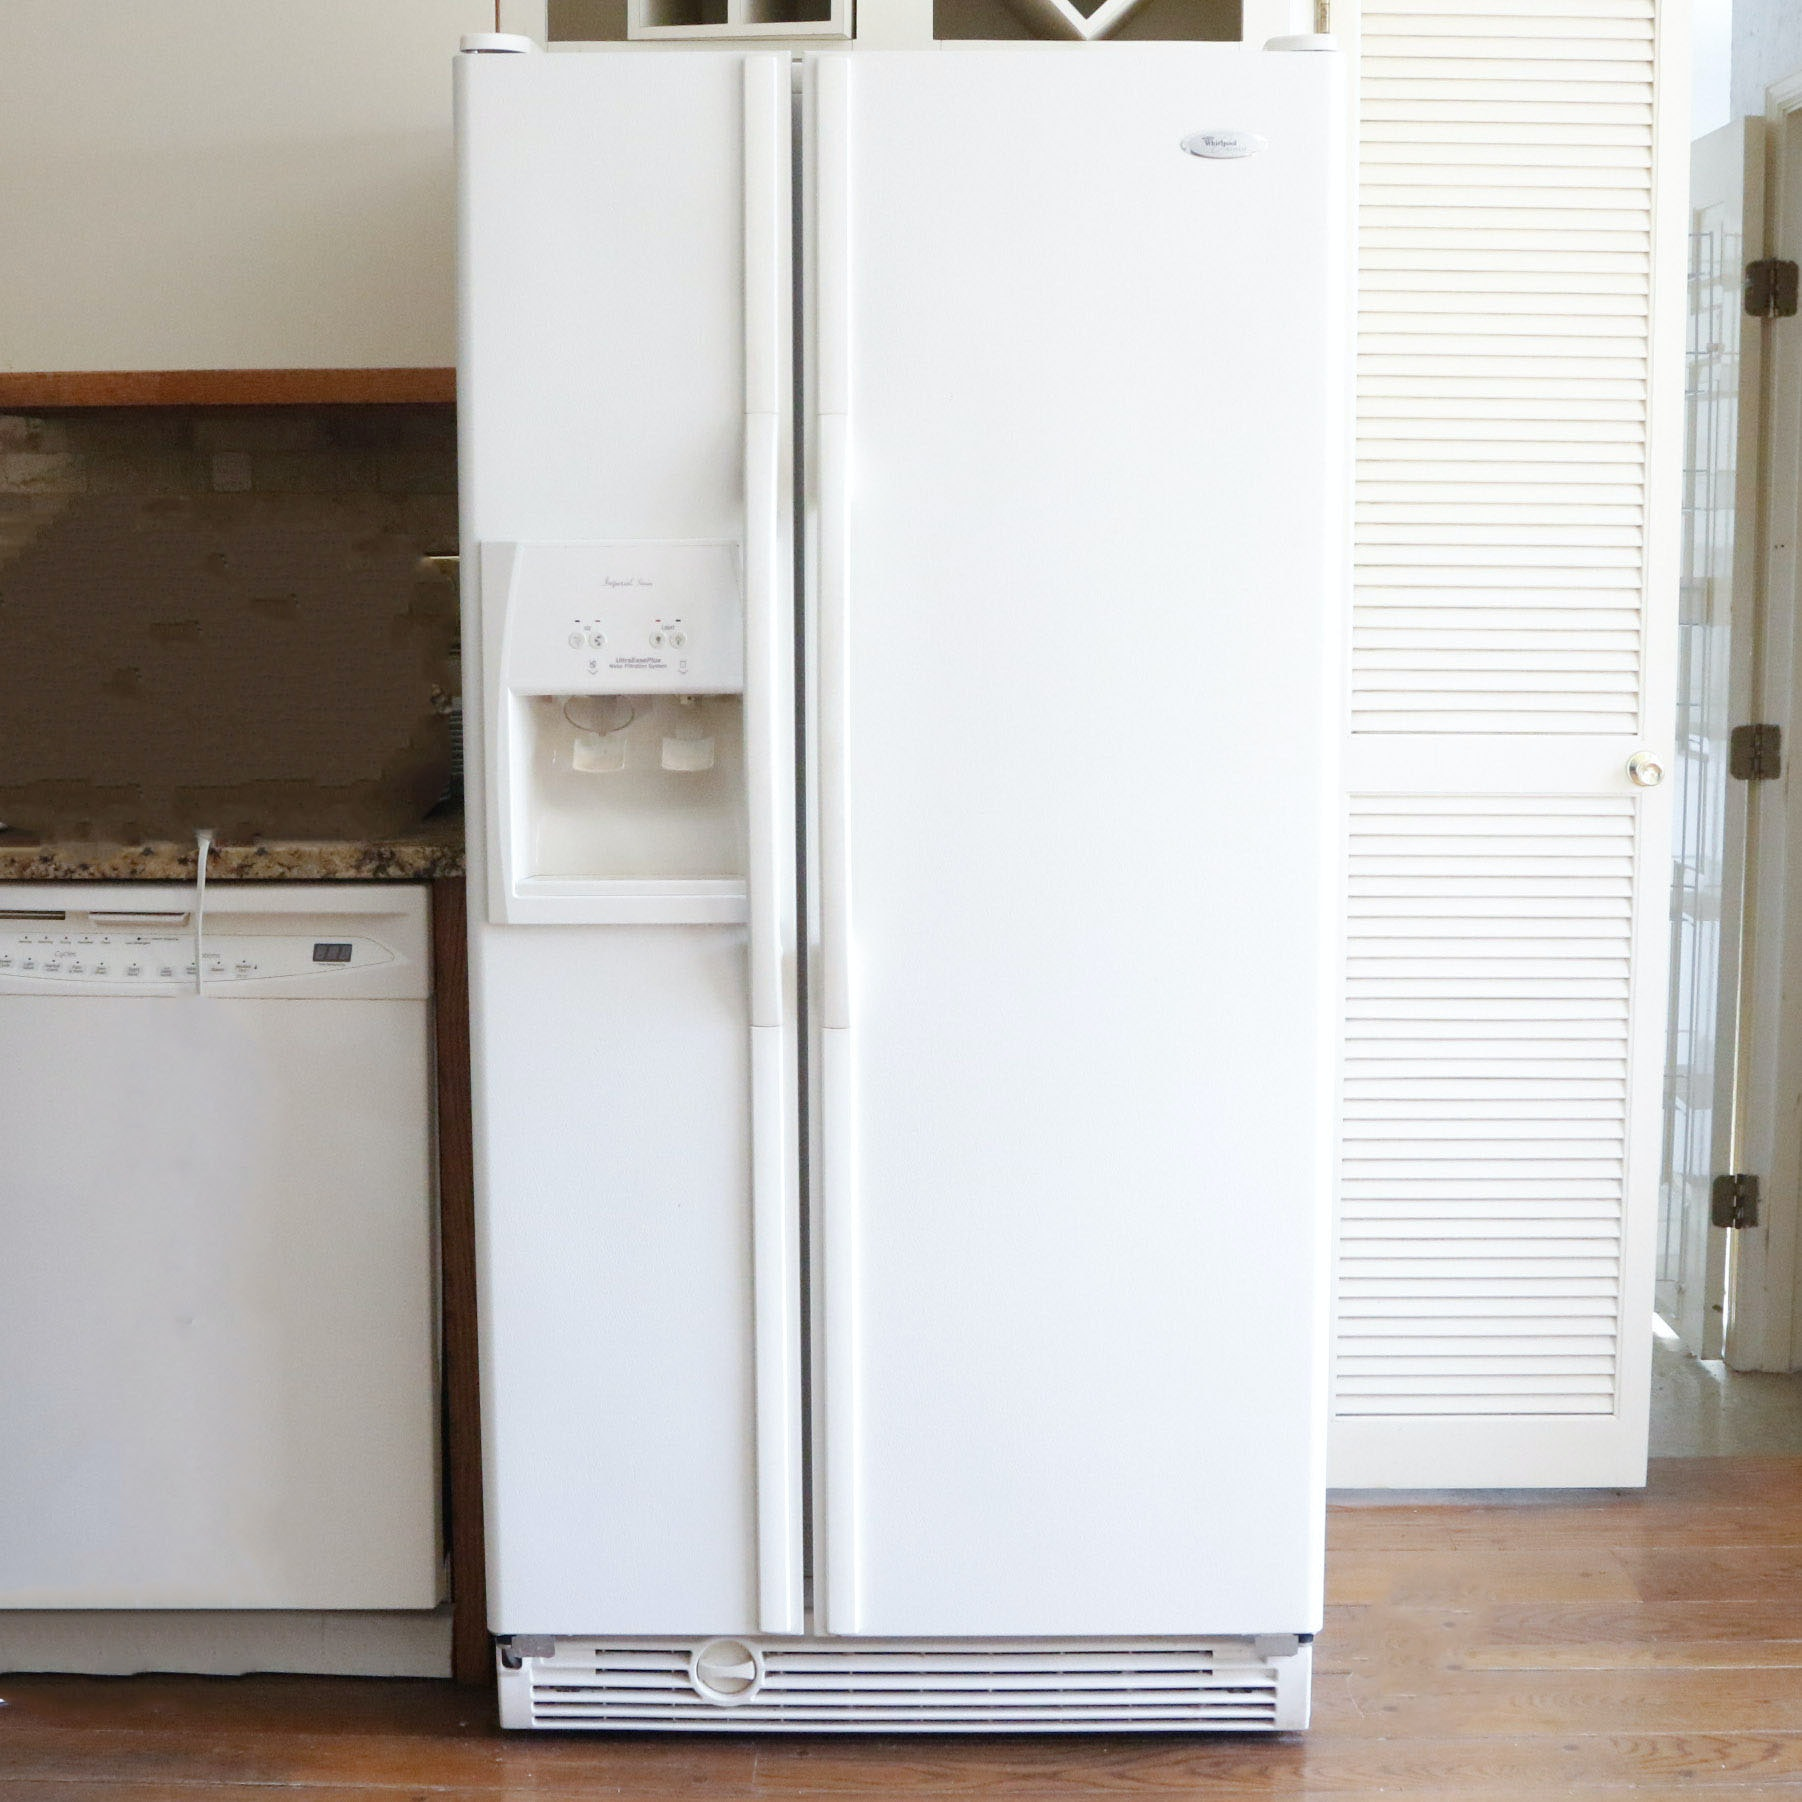 Whirlpool Gold Imperial Series Side By Side Refrigerator Ebth